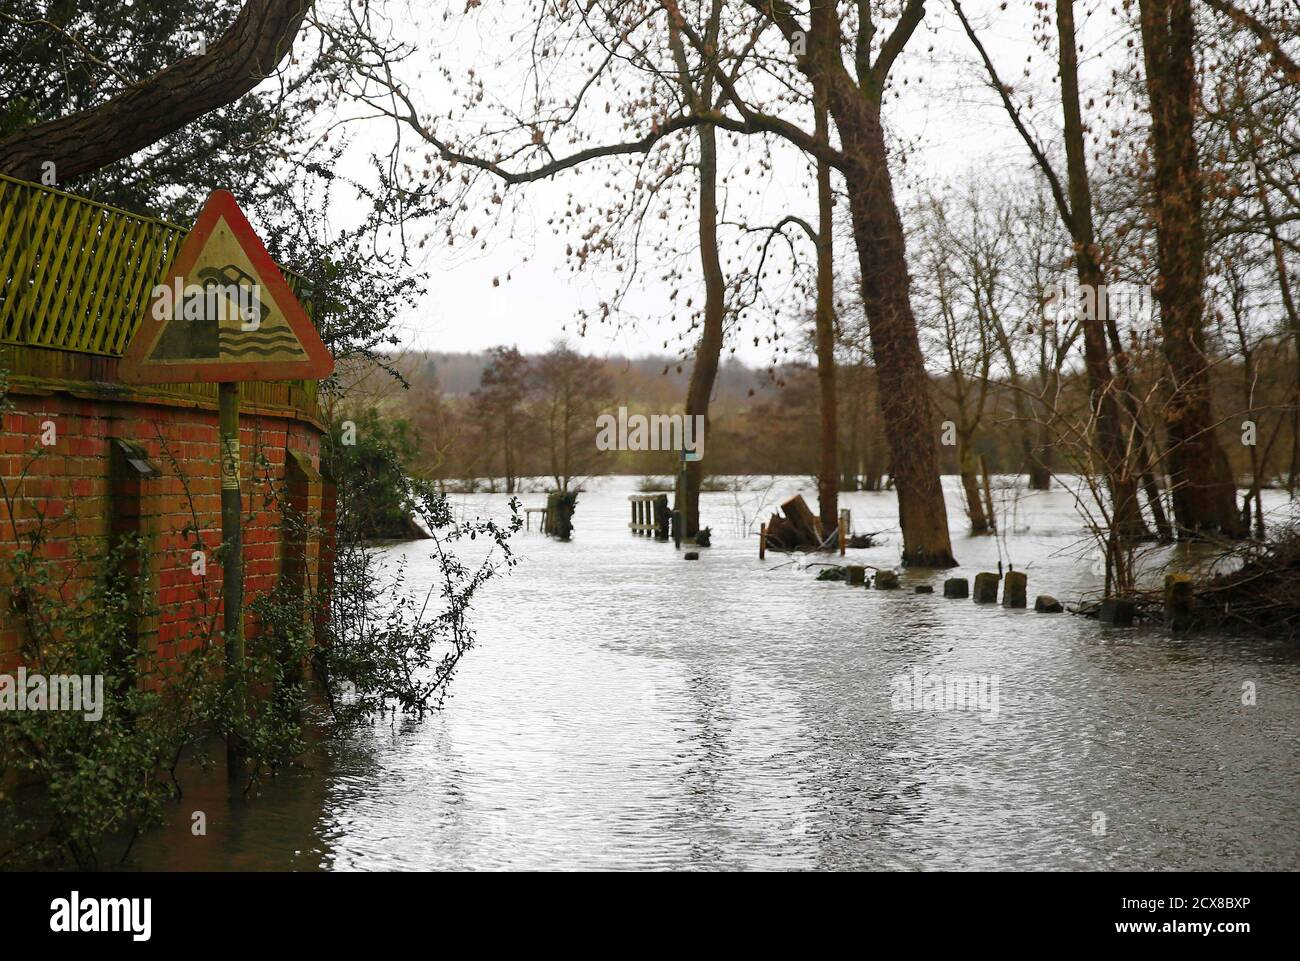 A danger sign is seen as water from the Thames River floods the village of Medmenham, southern England February 12, 2014. REUTERS/Eddie Keogh (BRITAIN - Tags: ENVIRONMENT DISASTER) Stock Photo